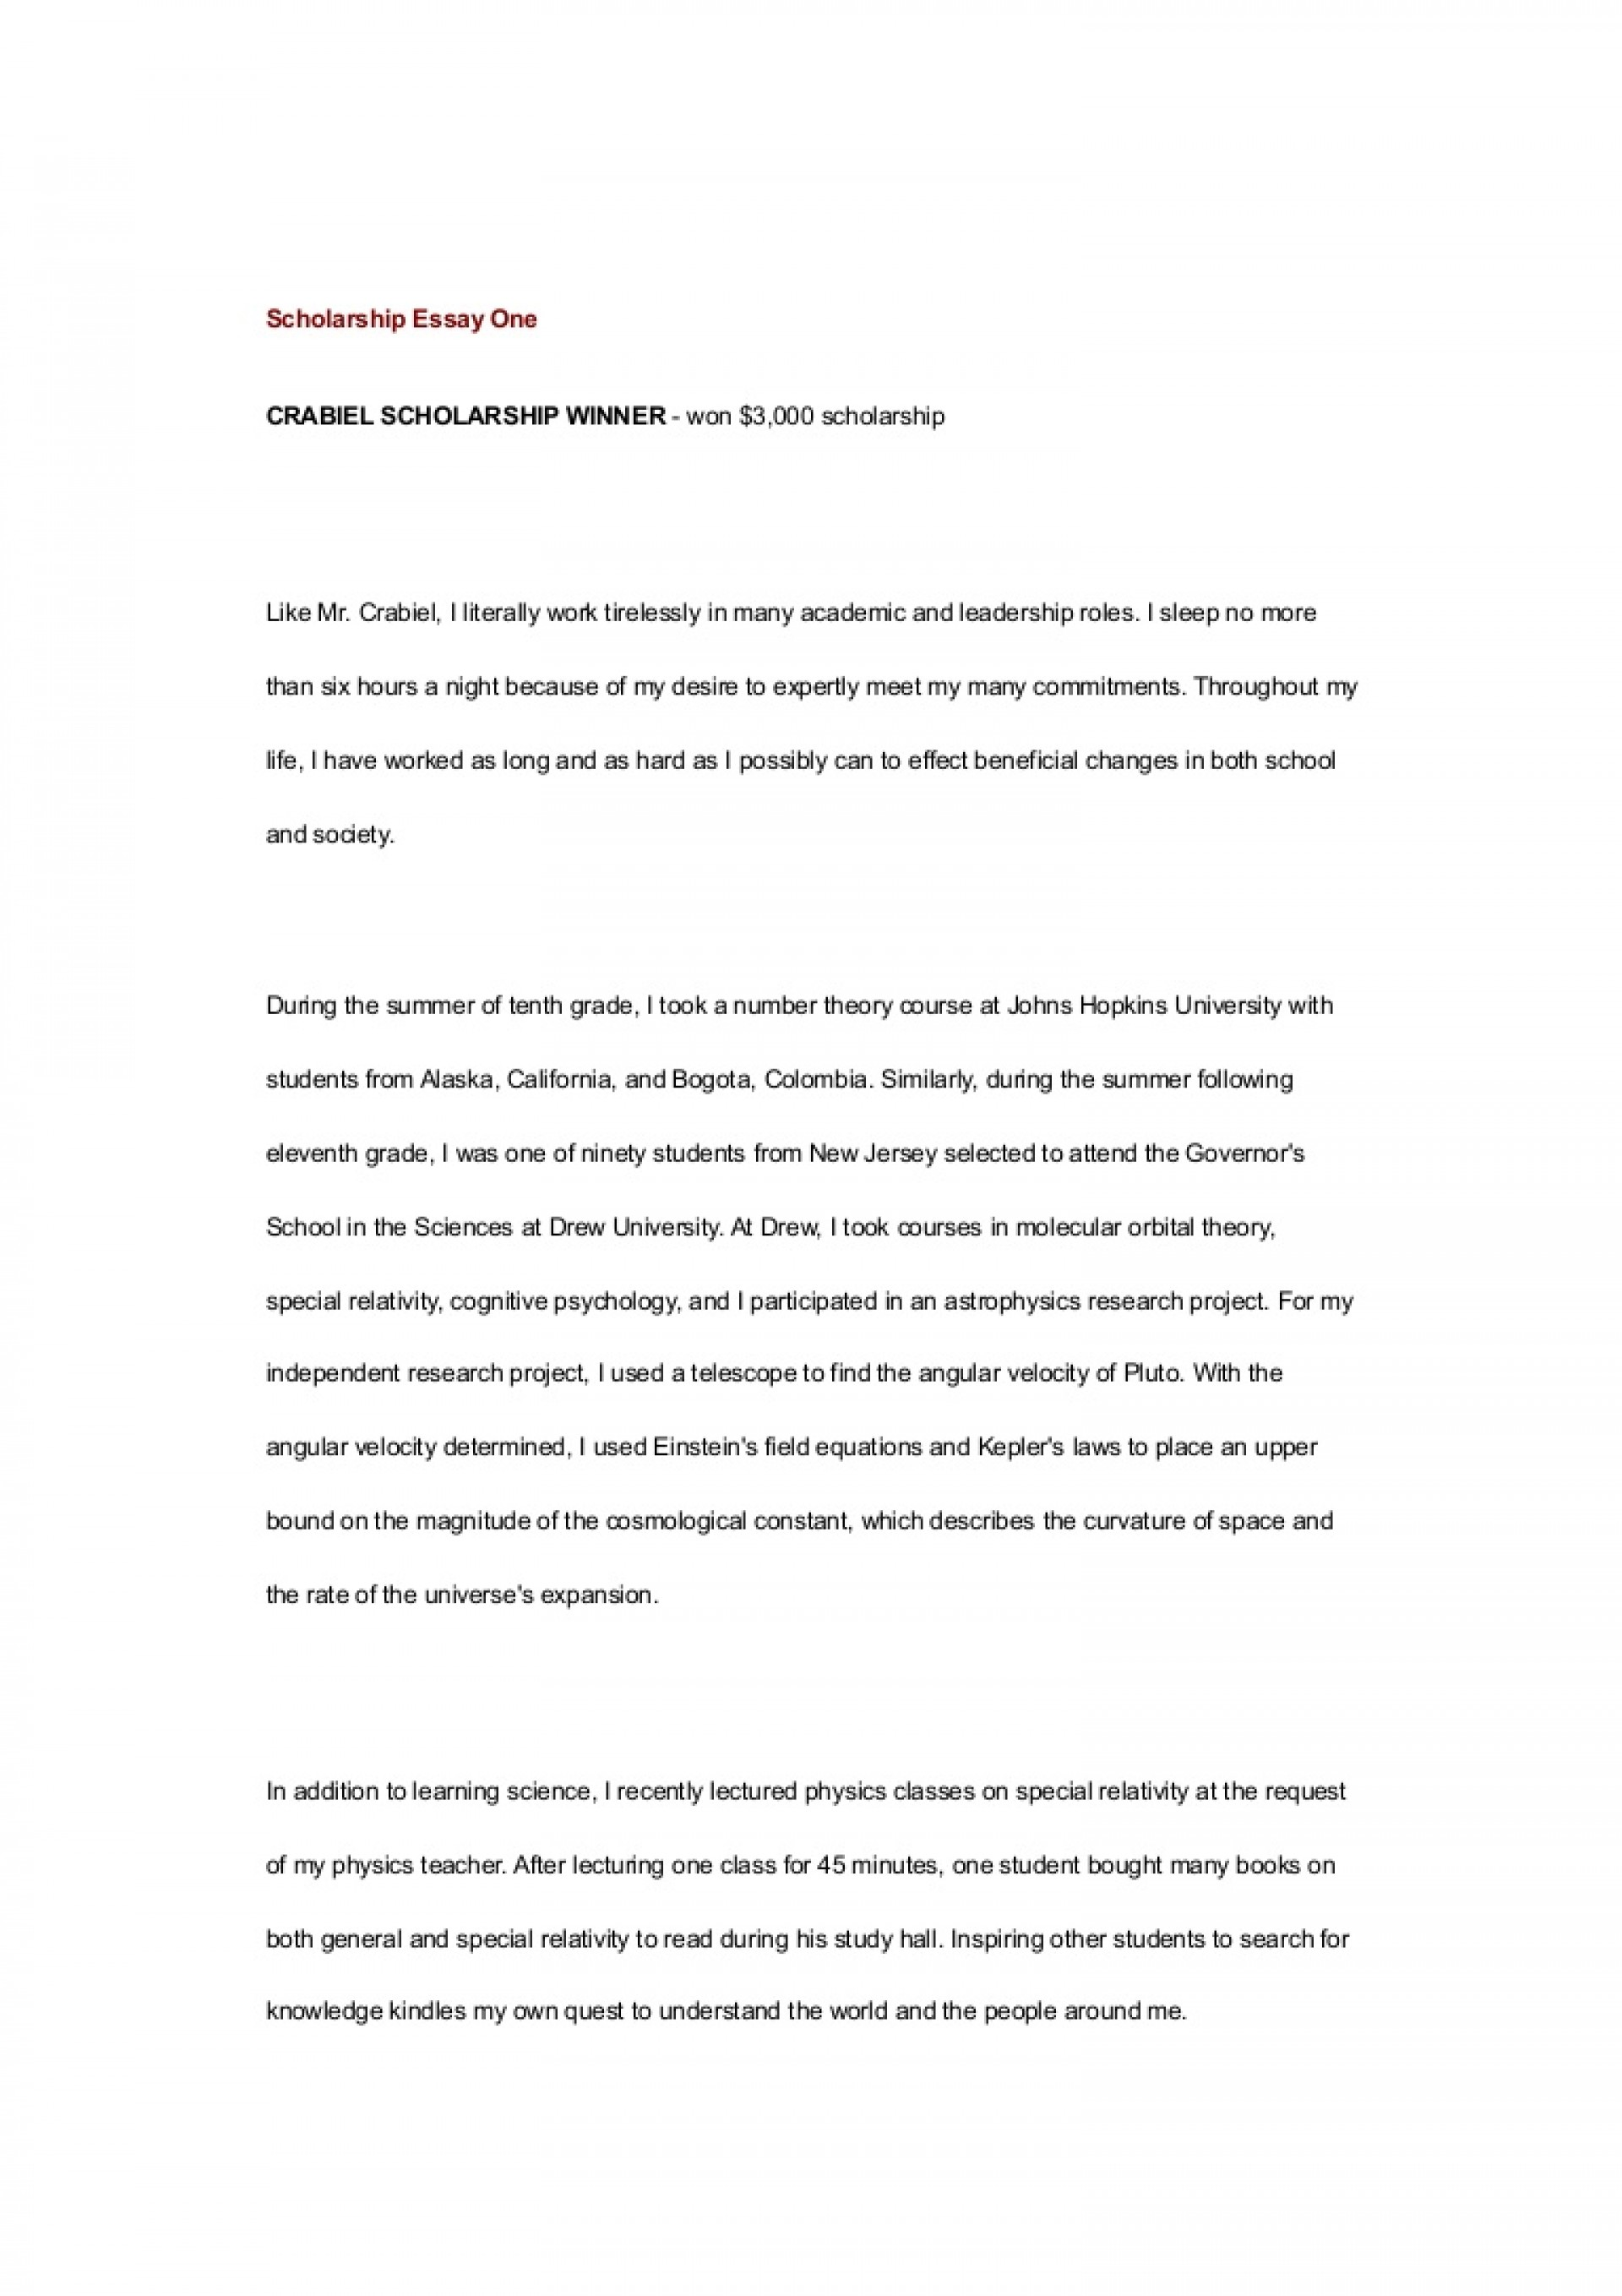 005 Scholarships Without Essays Scholarshipessayone Phpapp01 Thumbnail Essay Stunning Requirements No Required In Texas 1920